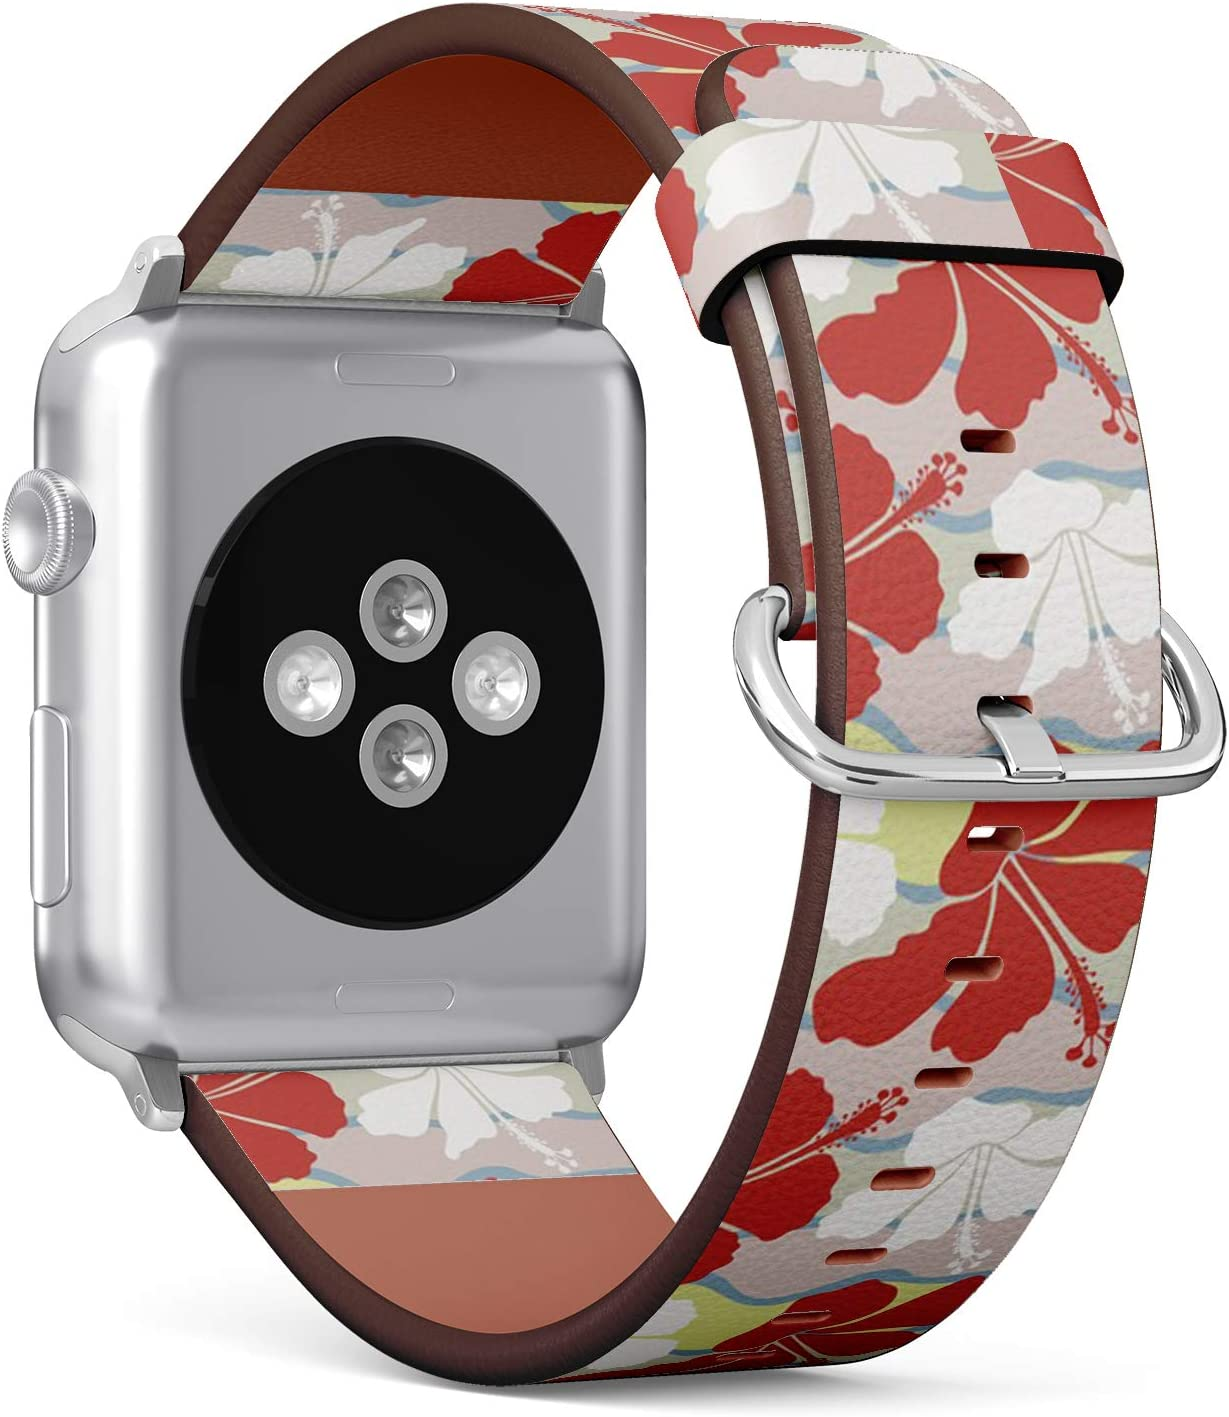 Compatible with Apple Watch (Big 42mm/44mm) Series 1,2,3,4 - Leather Band Bracelet Strap Wristband Replacement - Hawaiian Aloha Shirt